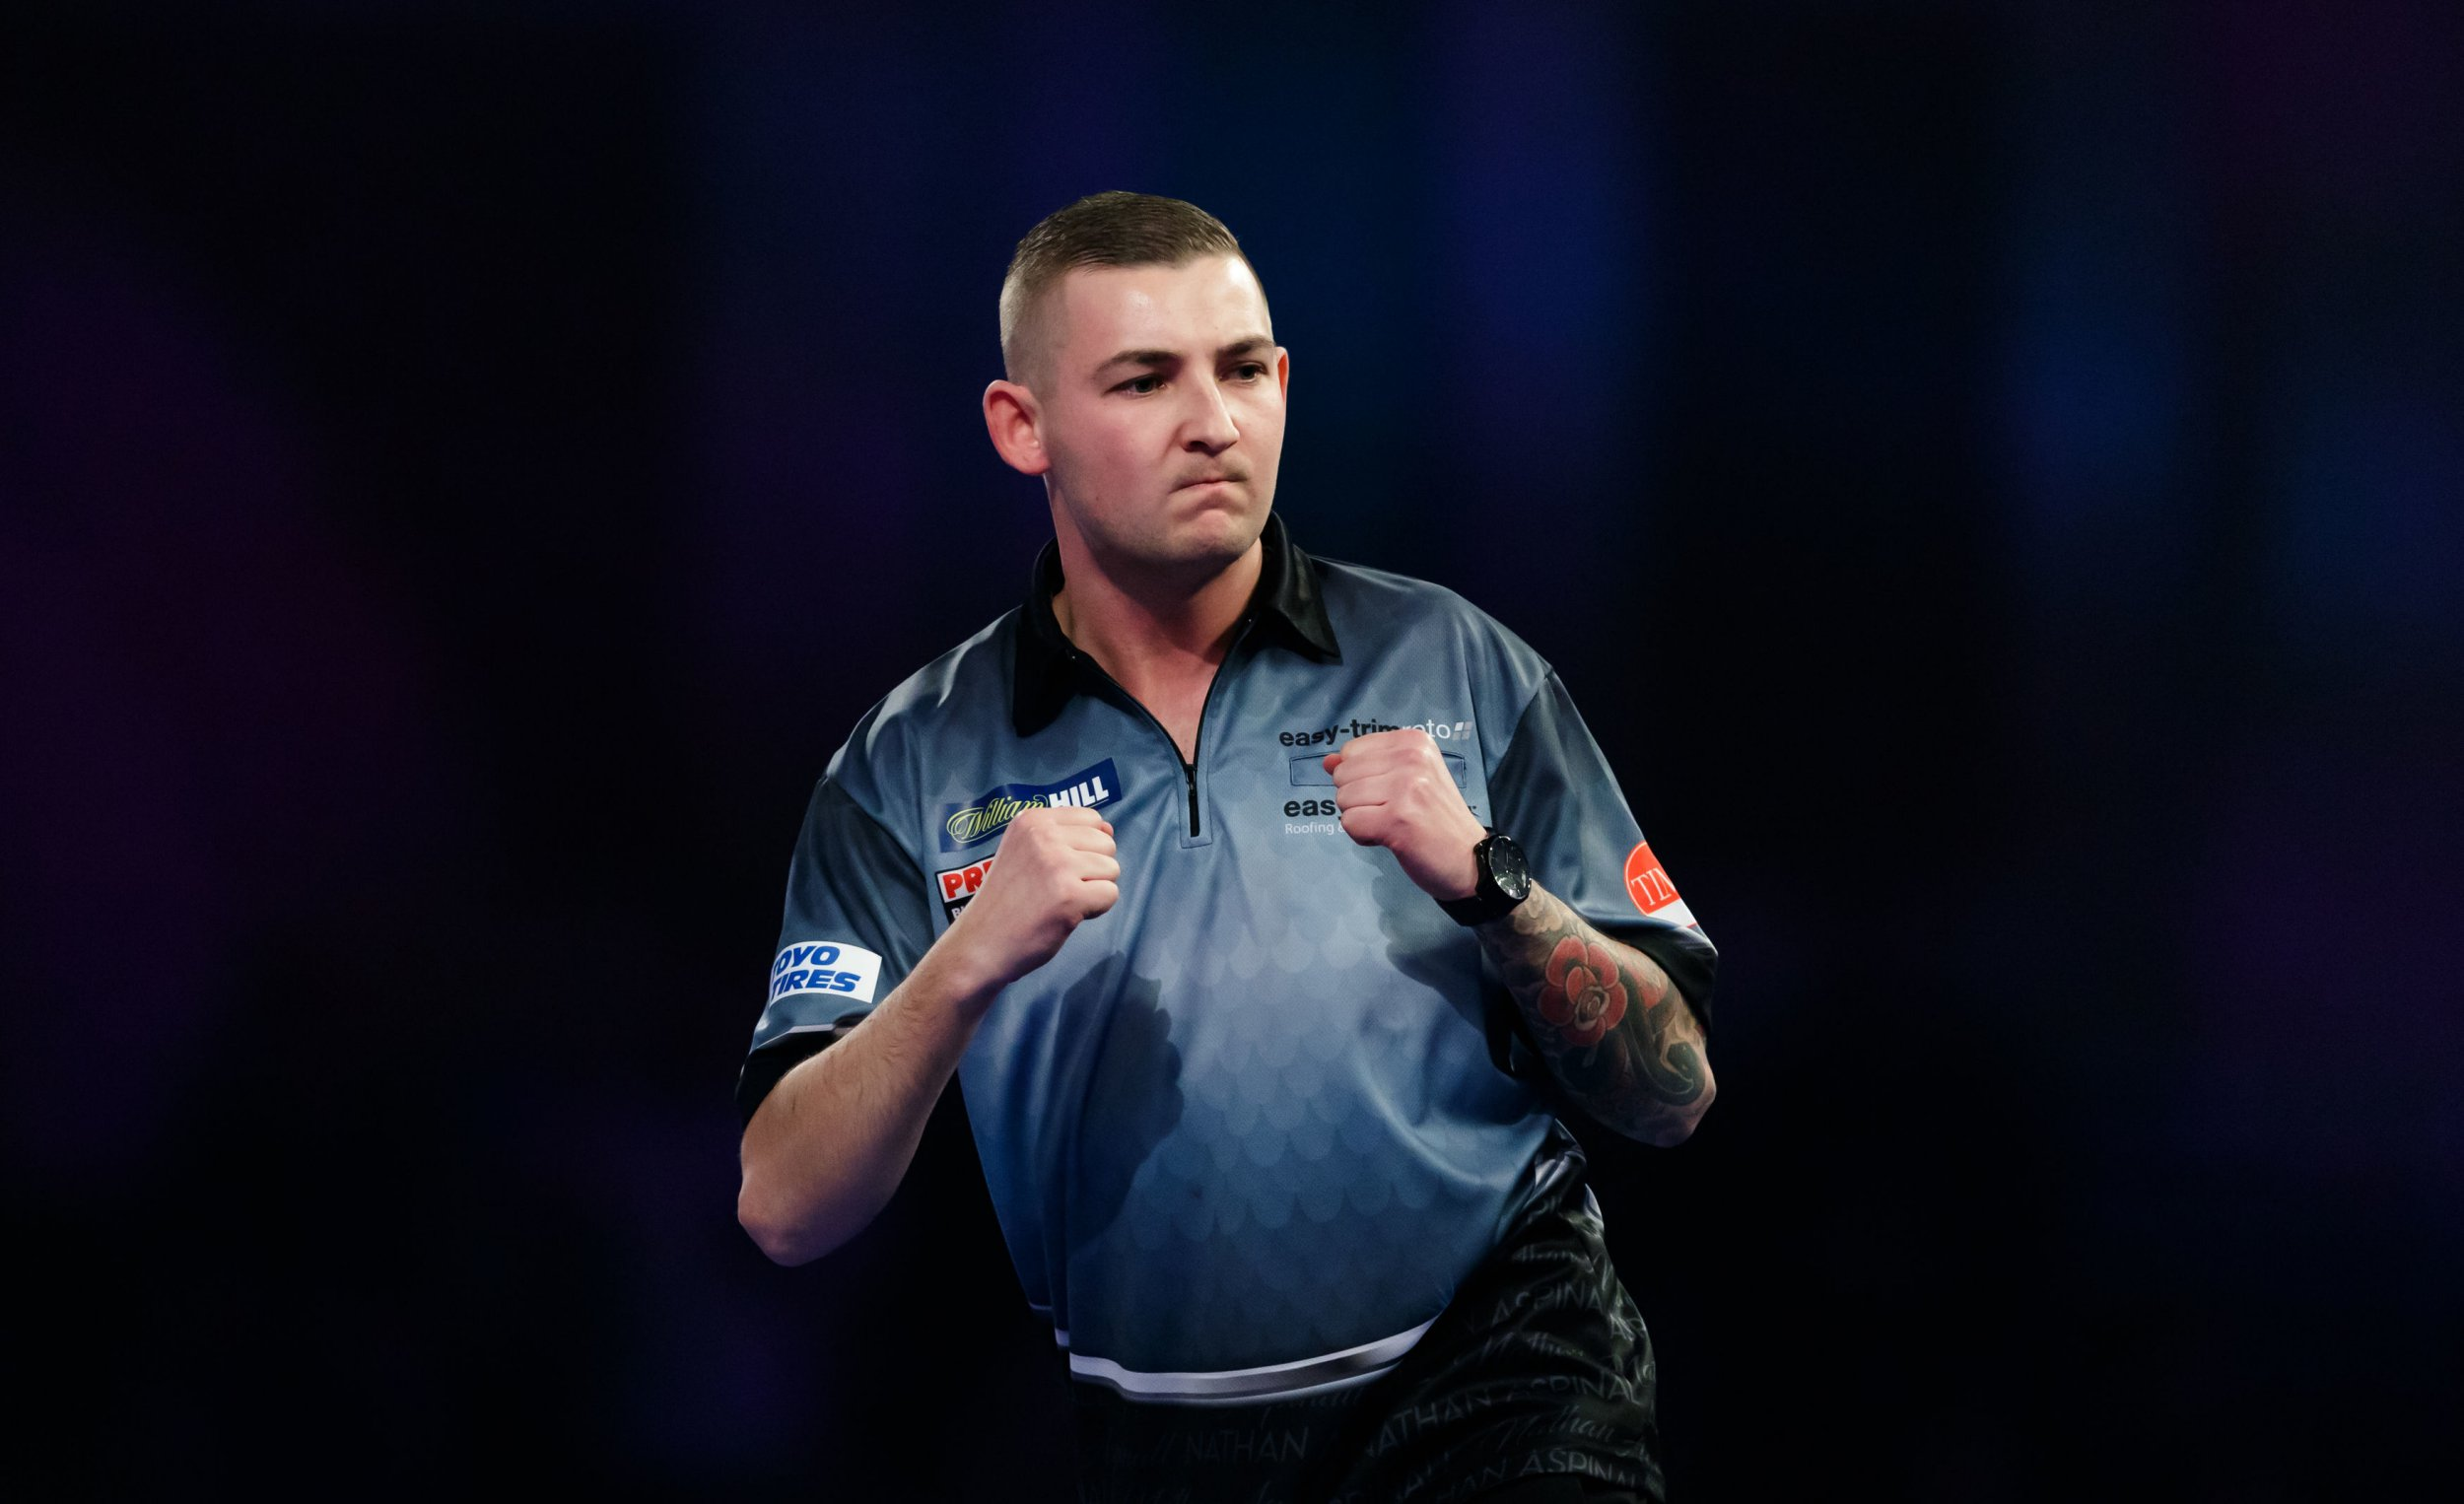 Nathan Aspinall celebrates taking the first set in his match against Darius Labanauskas during day eleven of the William Hill World Darts Championships at Alexandra Palace, London. PRESS ASSOCIATION Photo. Picture date: Sunday December 23, 2018. Photo credit should read: John Walton/PA Wire